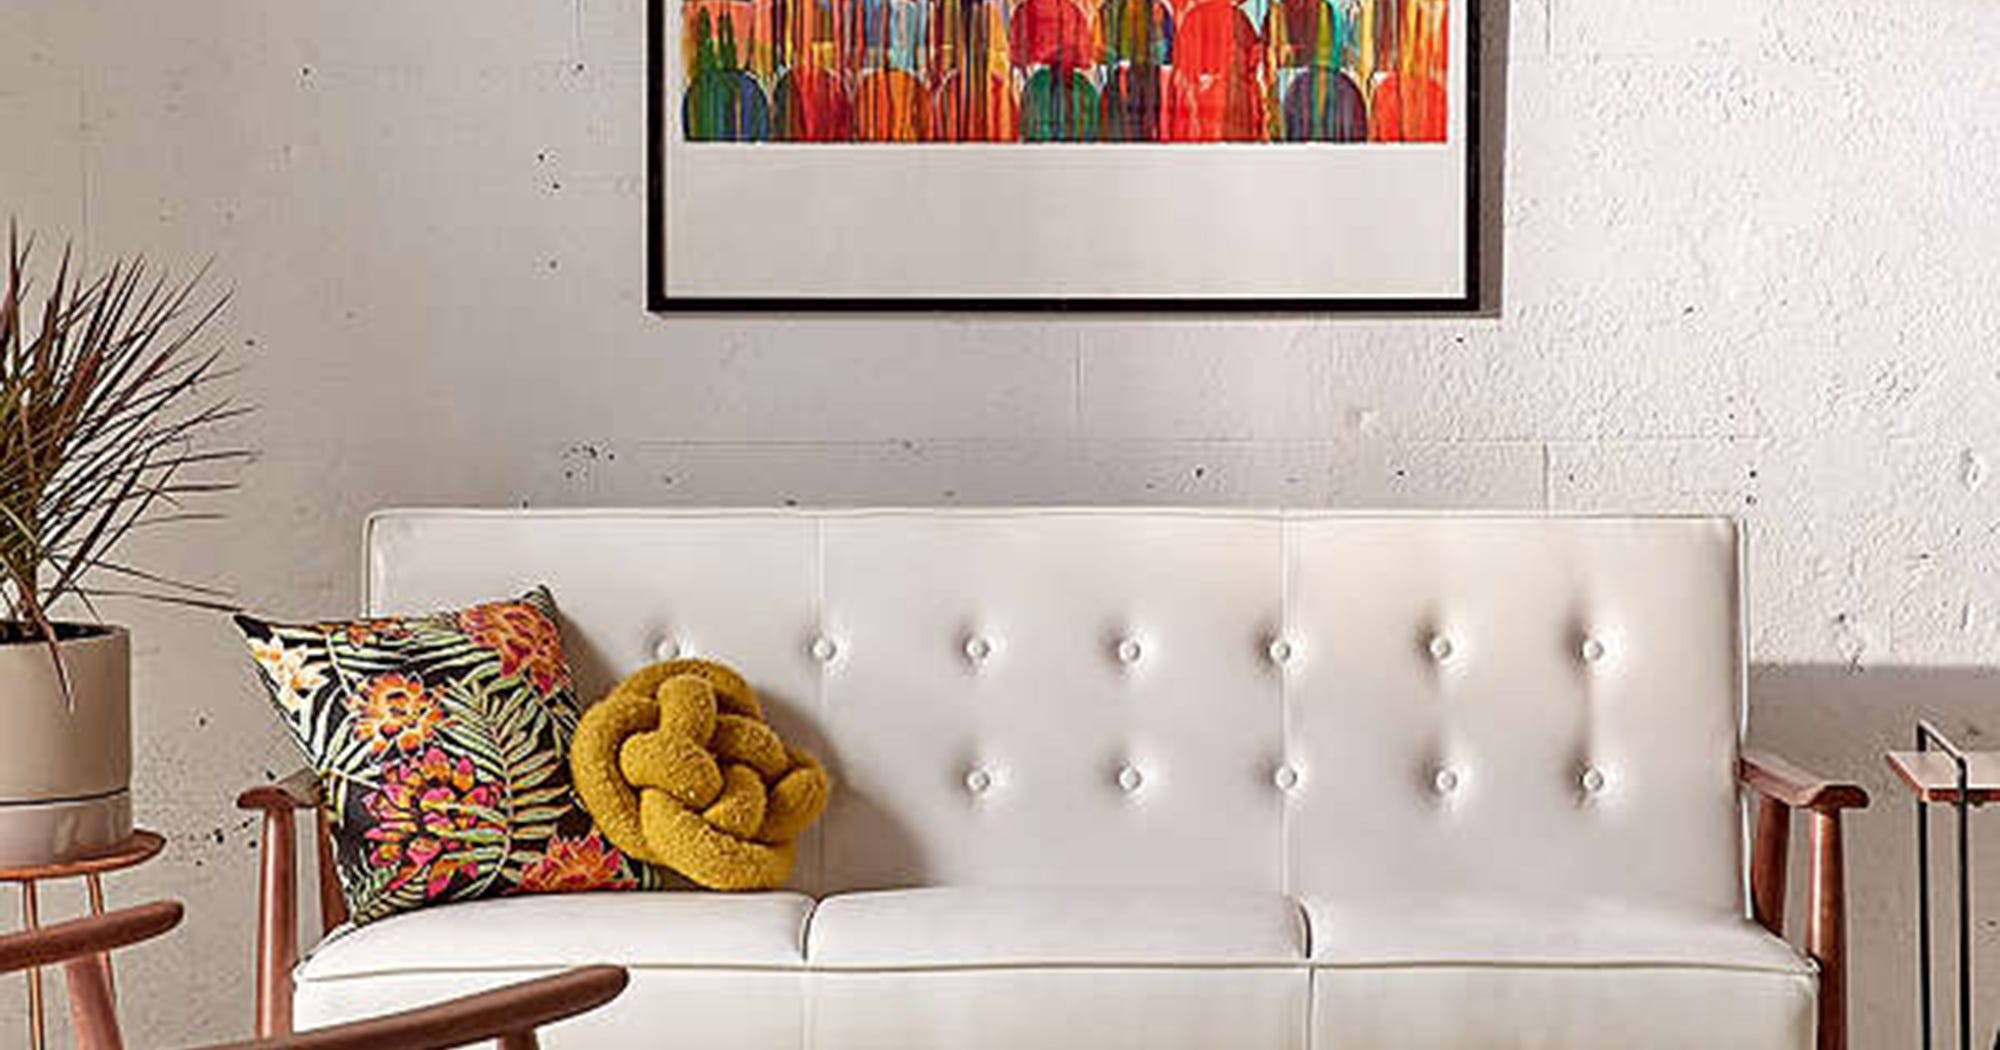 Surprising Best Small Space Sofa Couch For City Apartment Caraccident5 Cool Chair Designs And Ideas Caraccident5Info